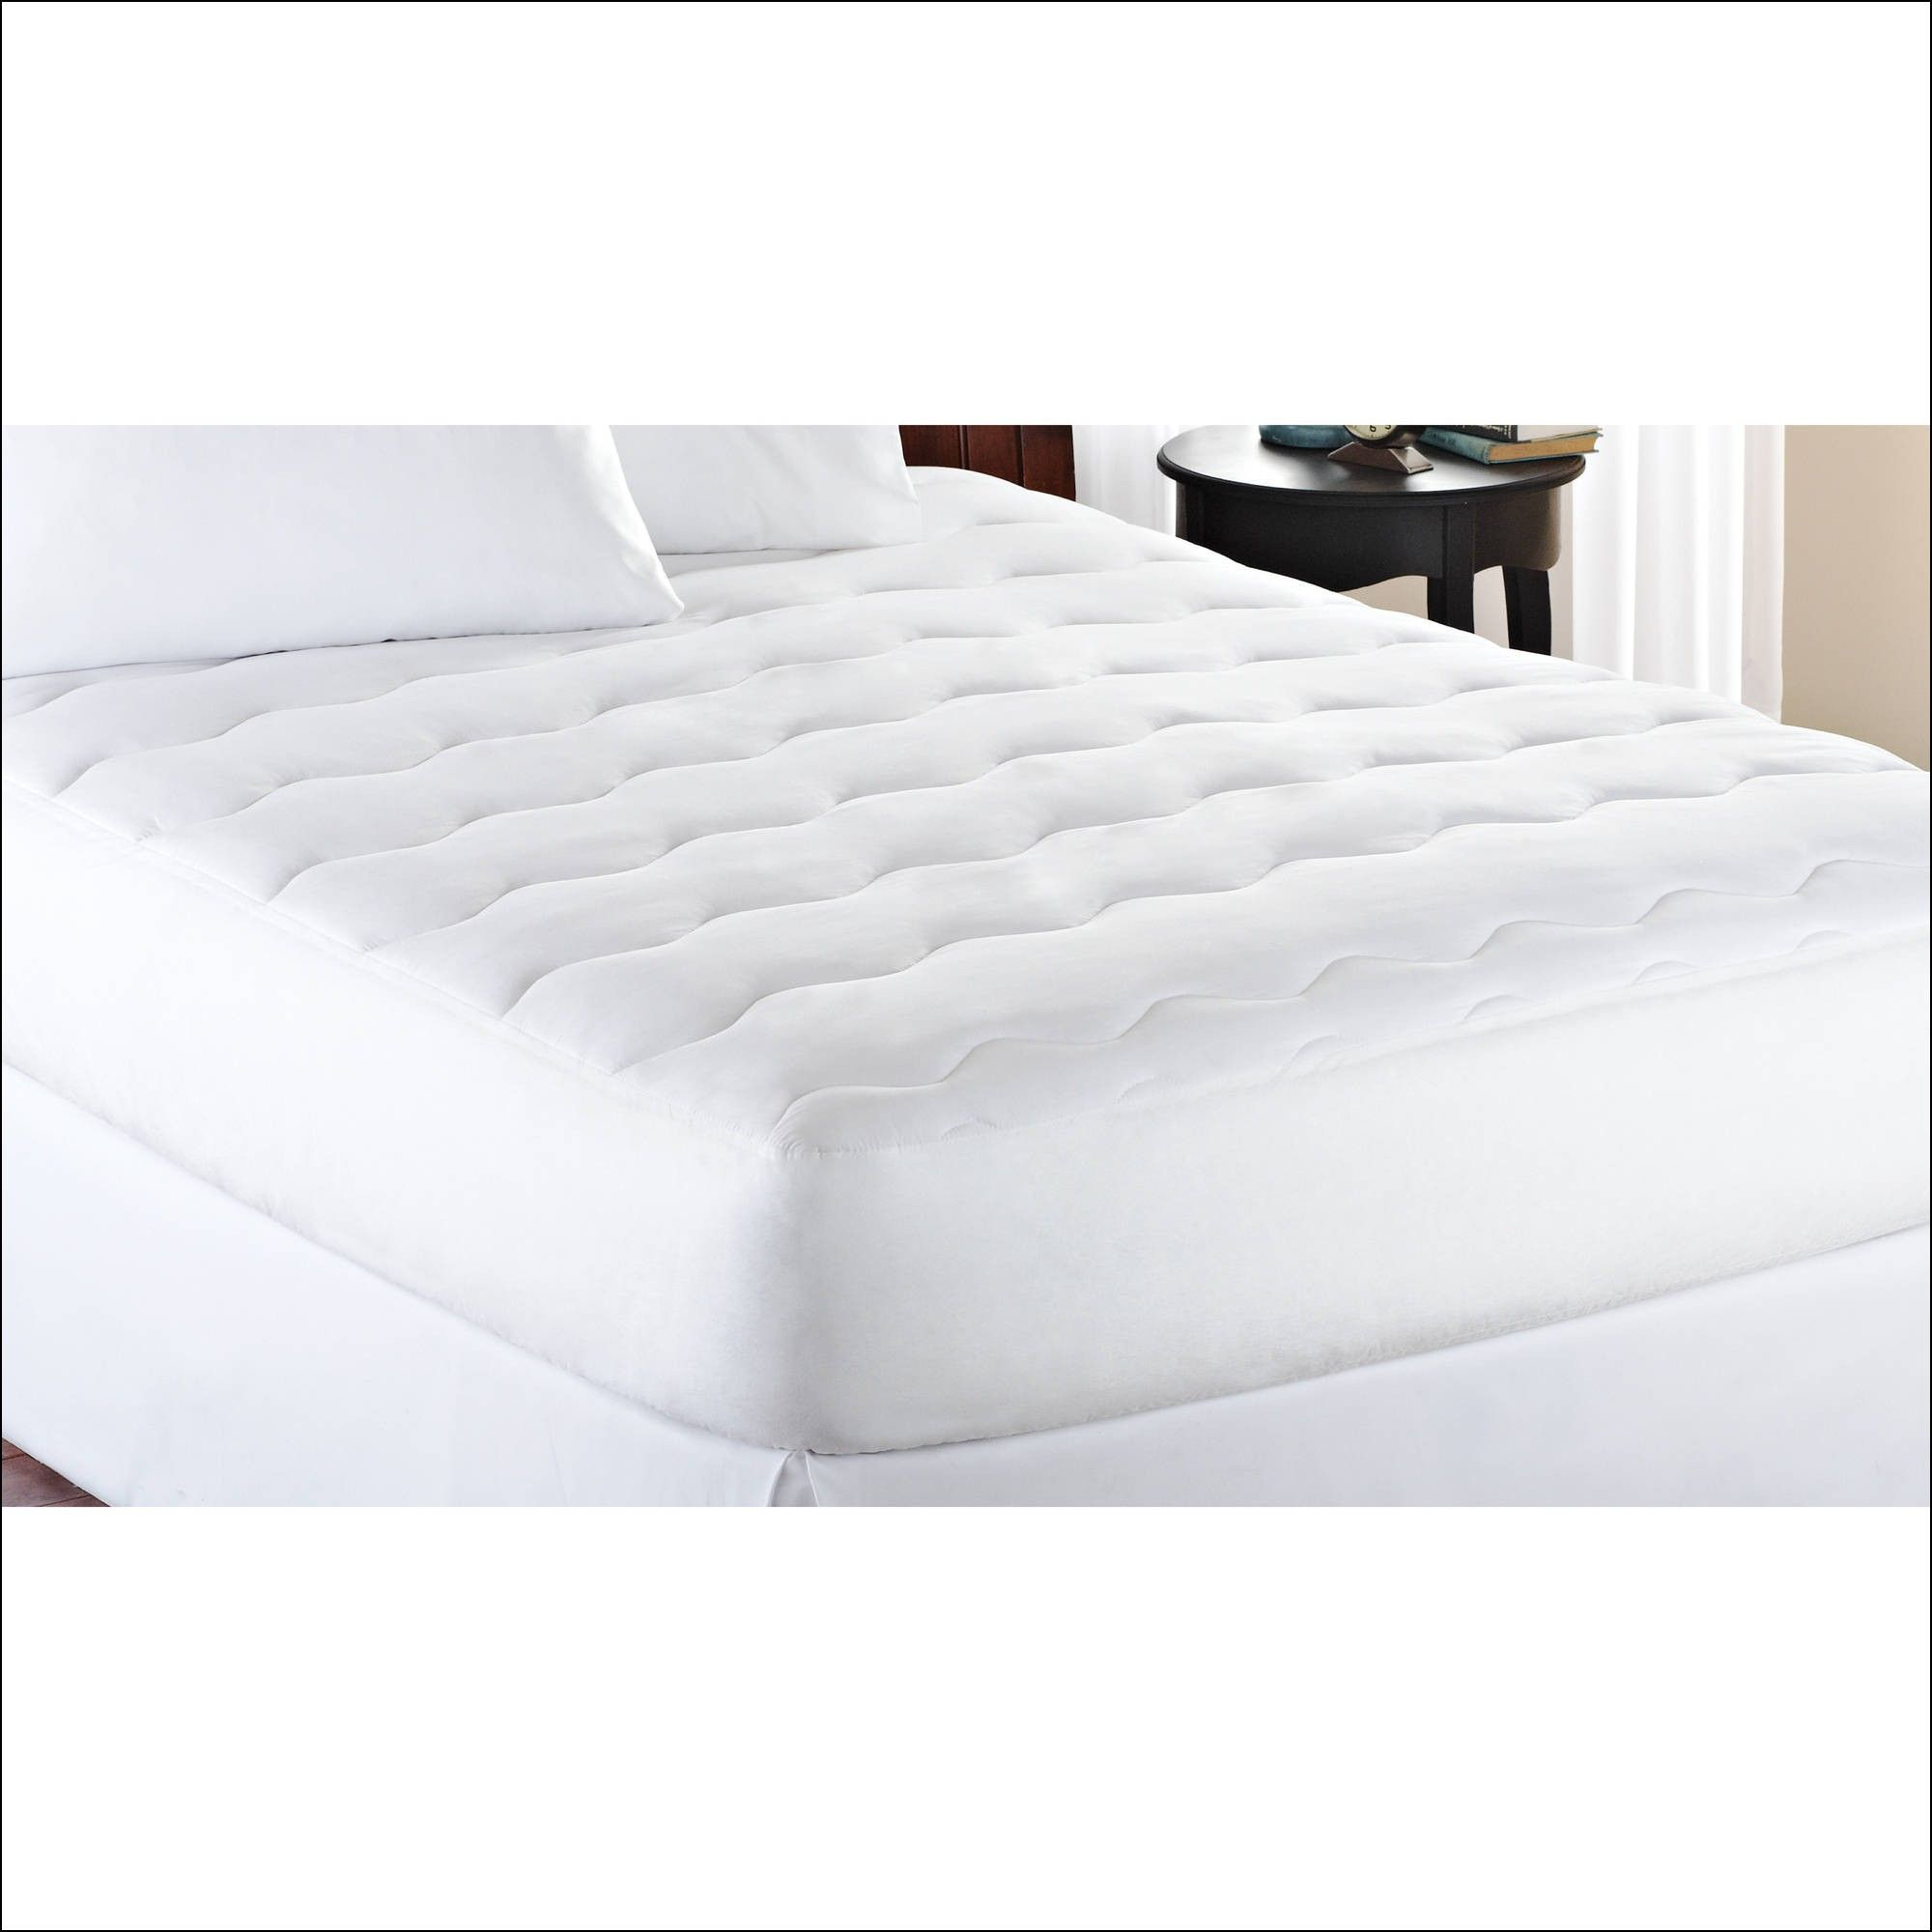 fortable gel of mattress topper elegant is this foam top fresh form posed dream design beautiful pillow pad